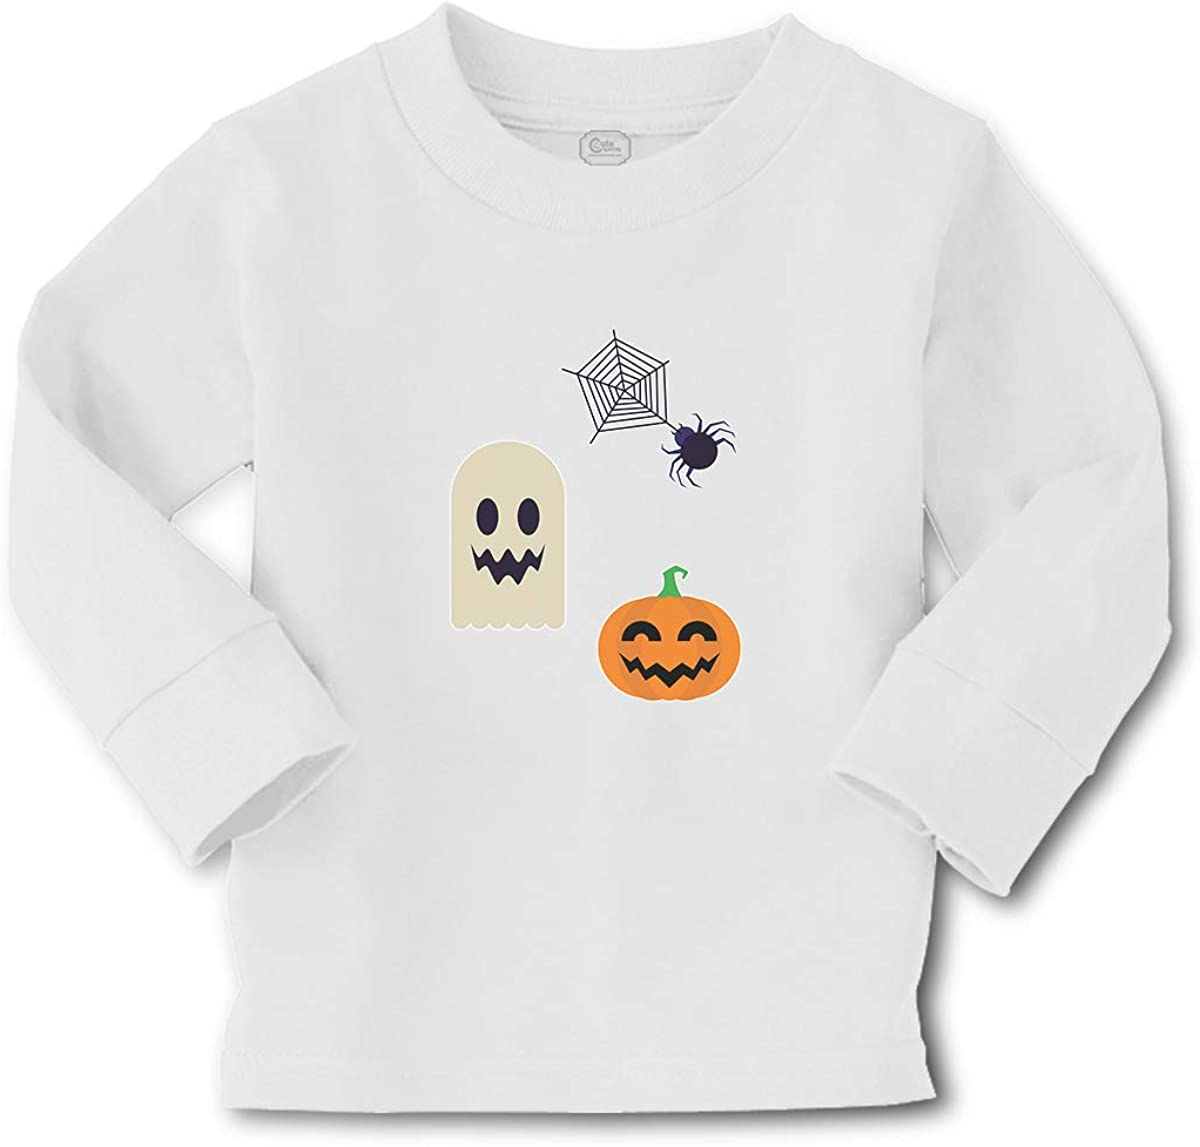 Cute Rascals Kids Long Sleeve T Shirt Halloween and Spider Web Cotton Boy & Girl Clothes Funny Graphic Tee A White Design Only 3T